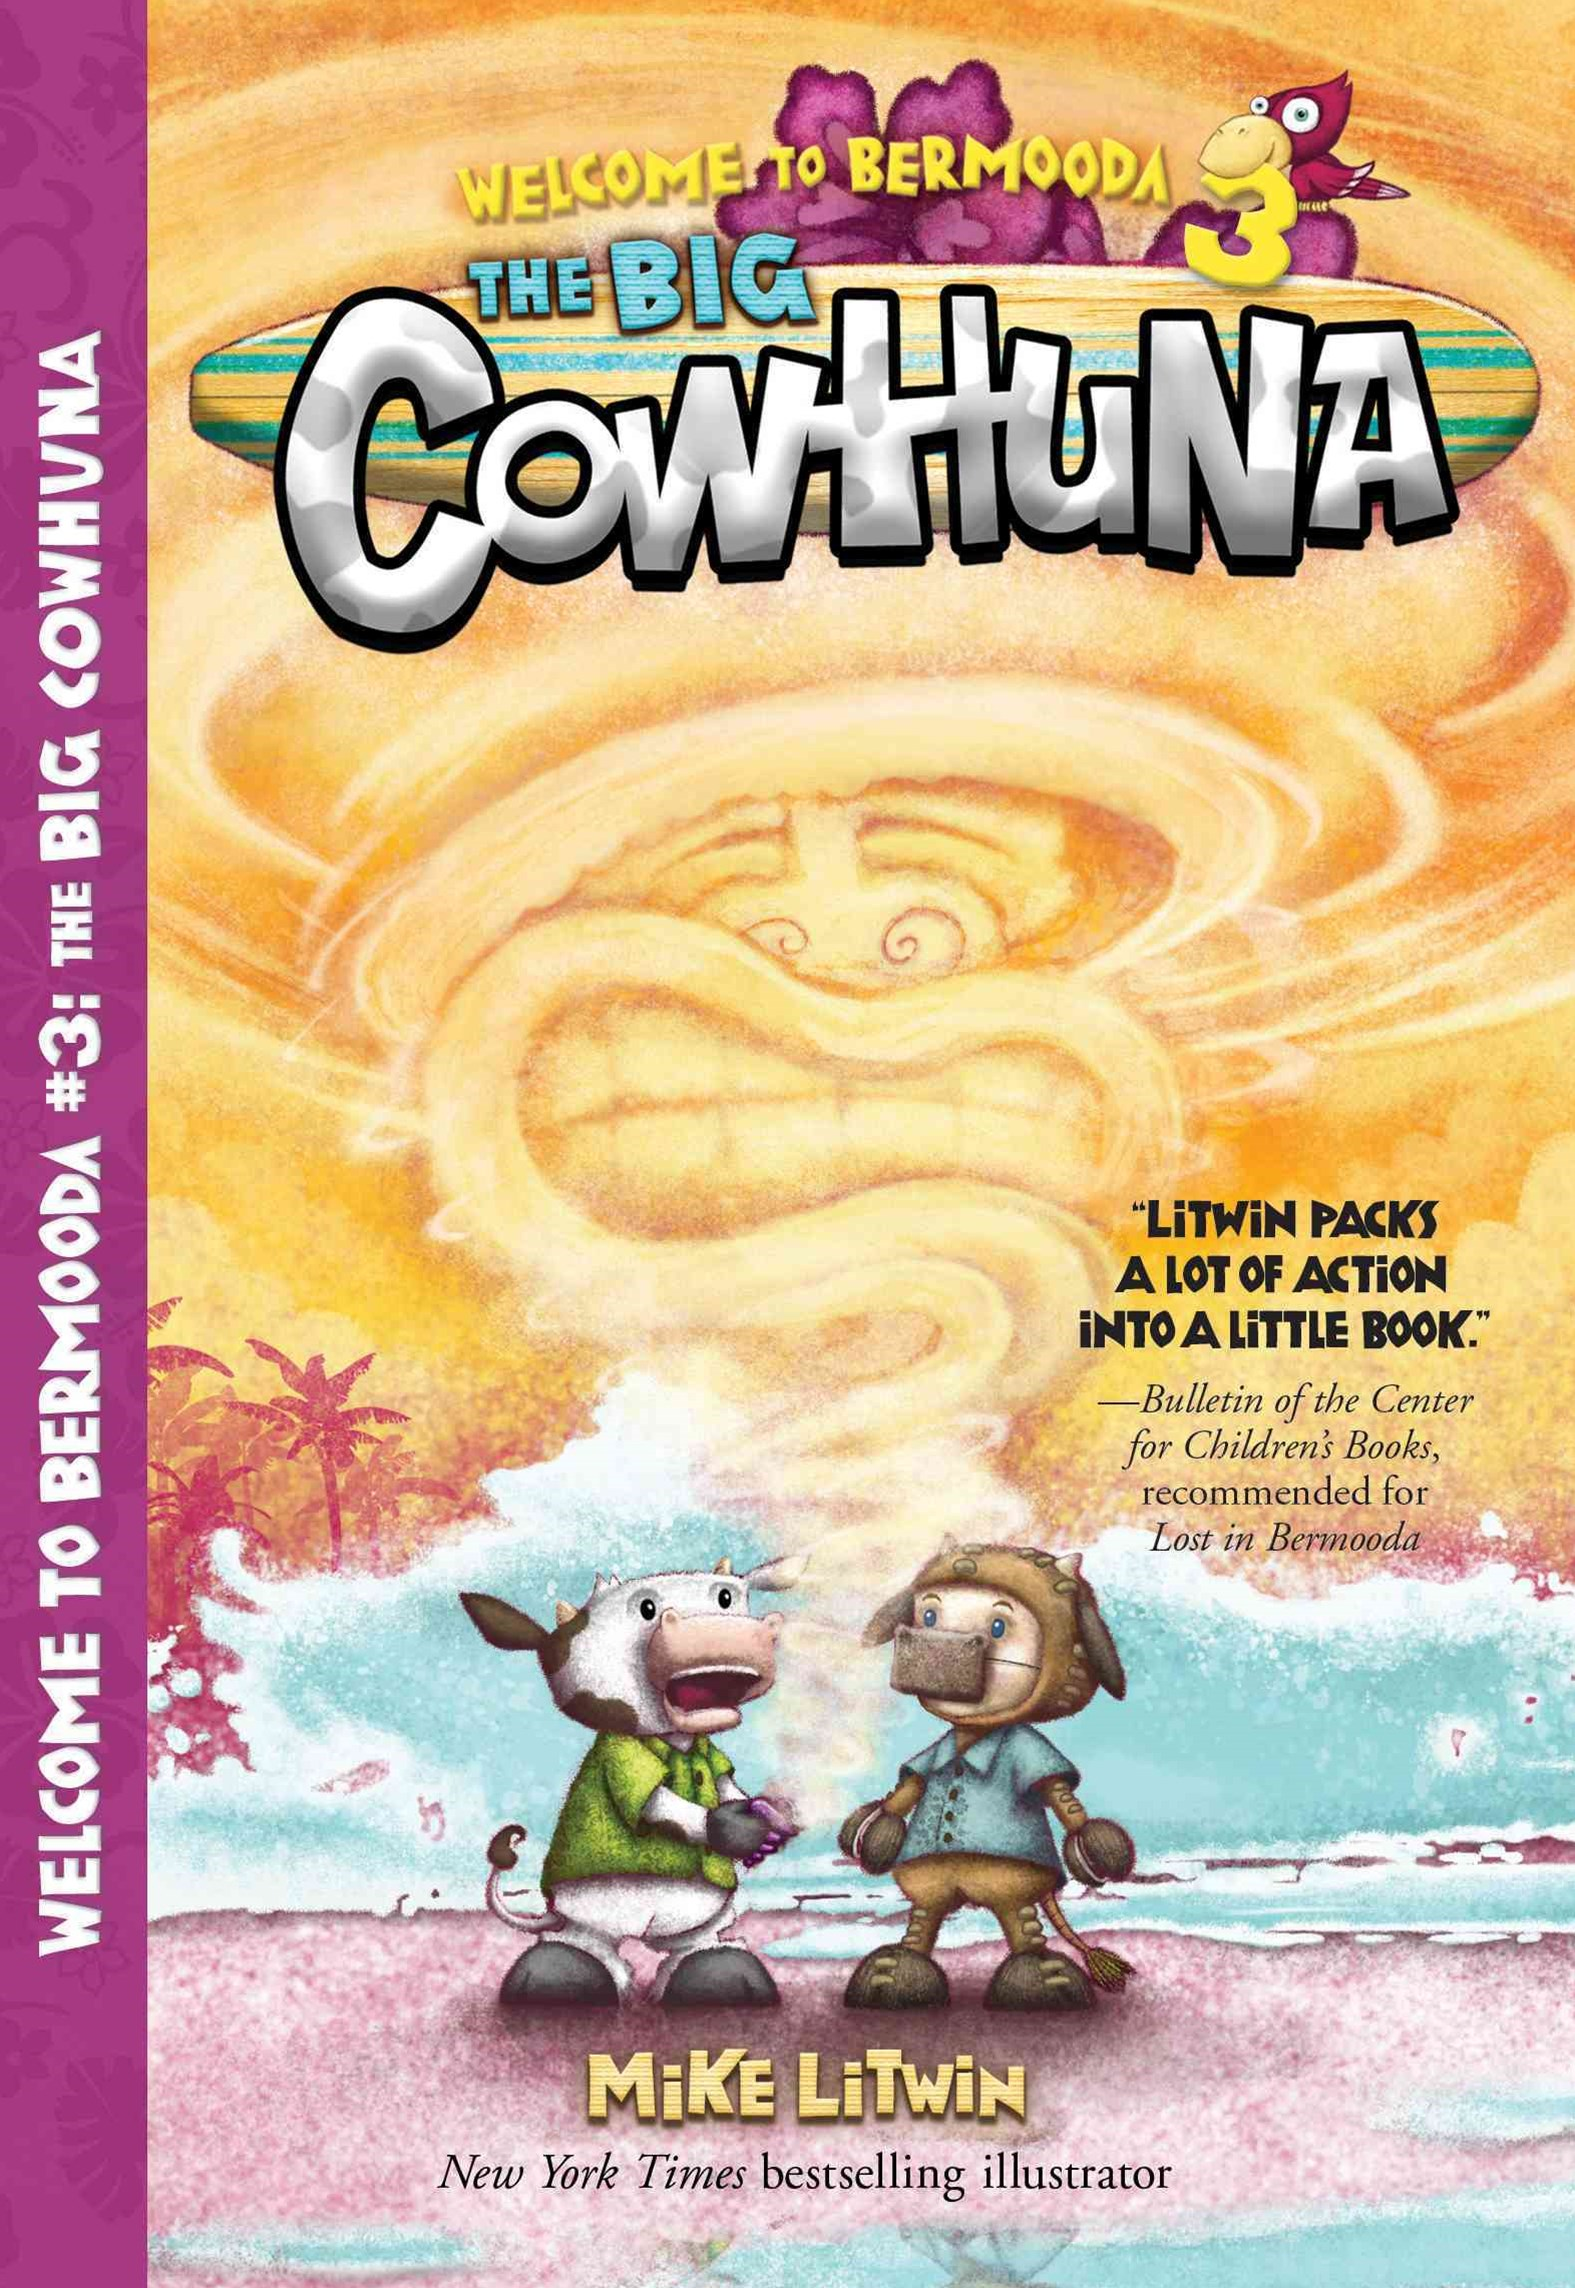 The Big Cowhuna